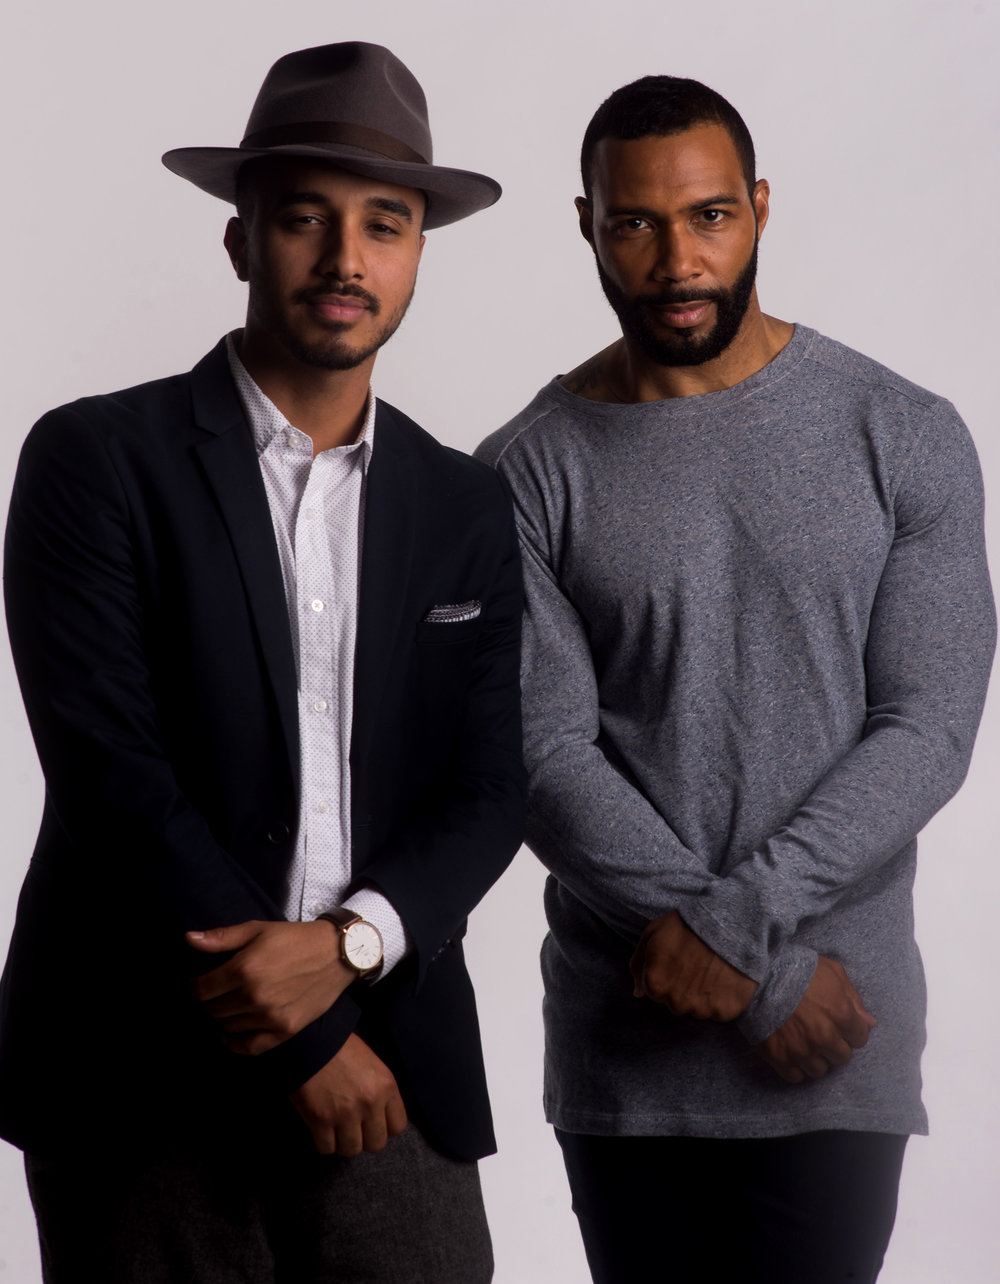 Behind the scenes portrait with Omari Hardwick for our cover editorial.